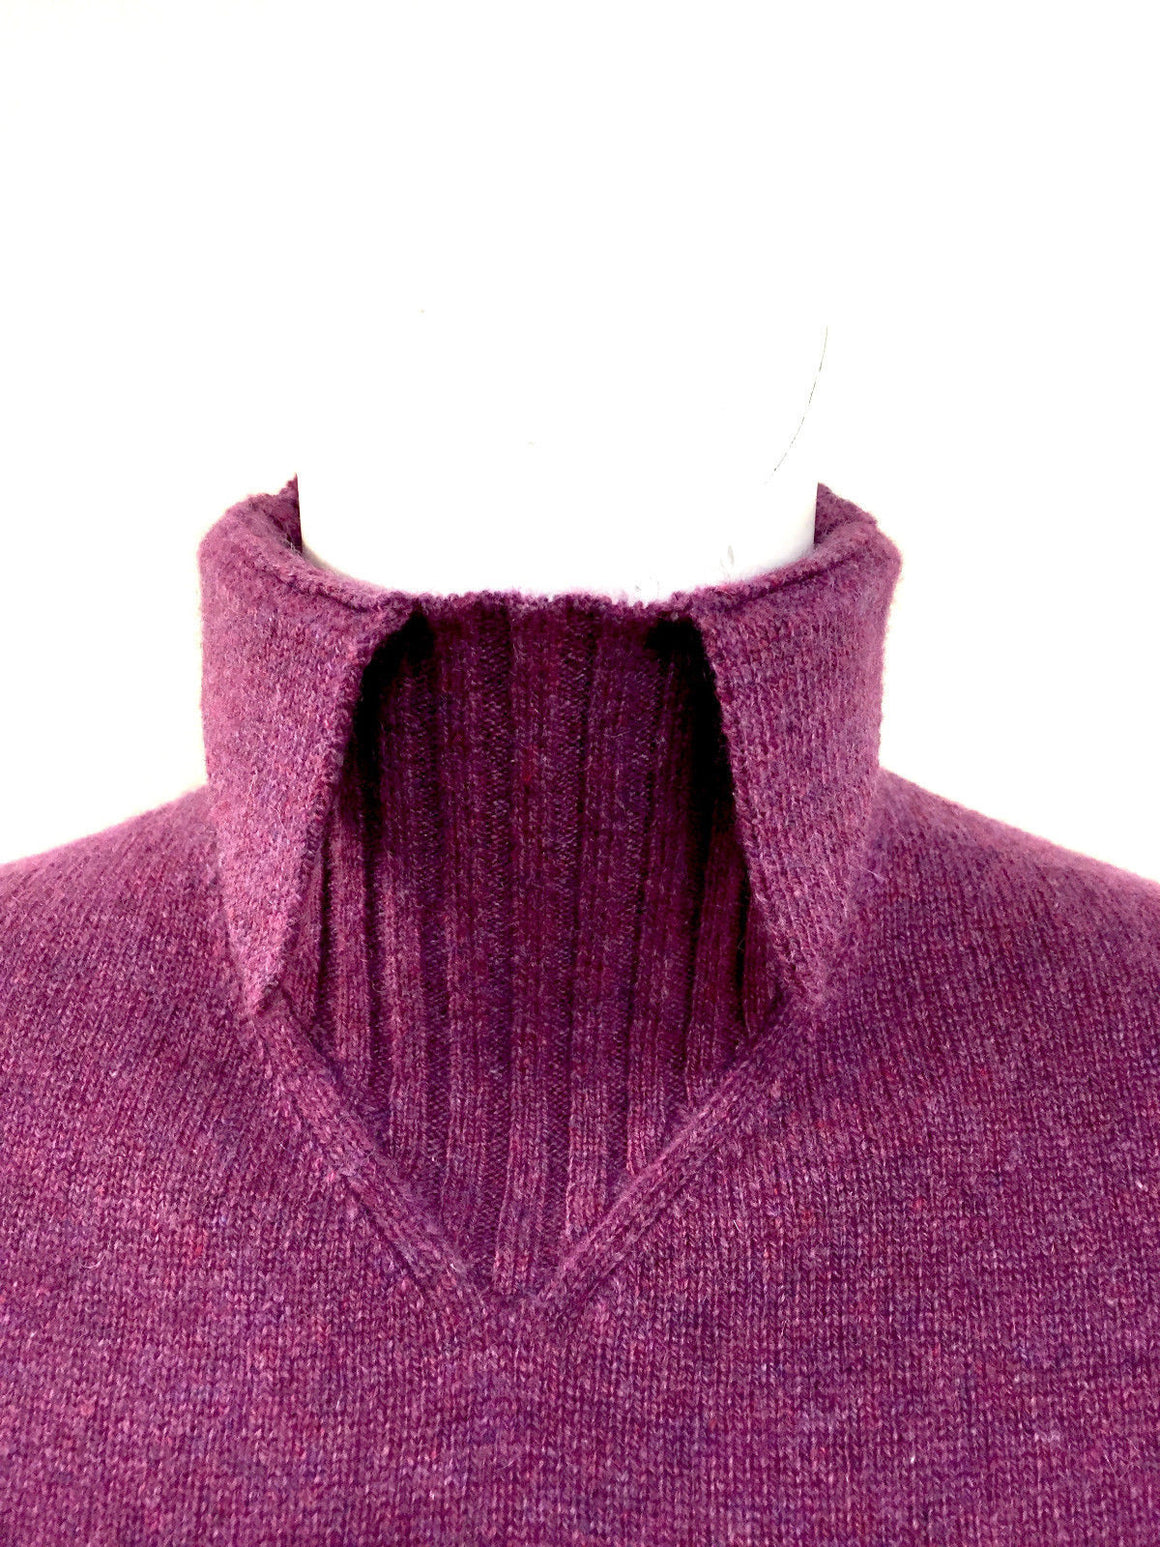 bisbiz.com CHANEL New with Tags Orchid-Fuchsia Cashmere Turtleneck Sweater Top with Pointed Collar & Cuffs Size: S/M - Bis Designer Resale